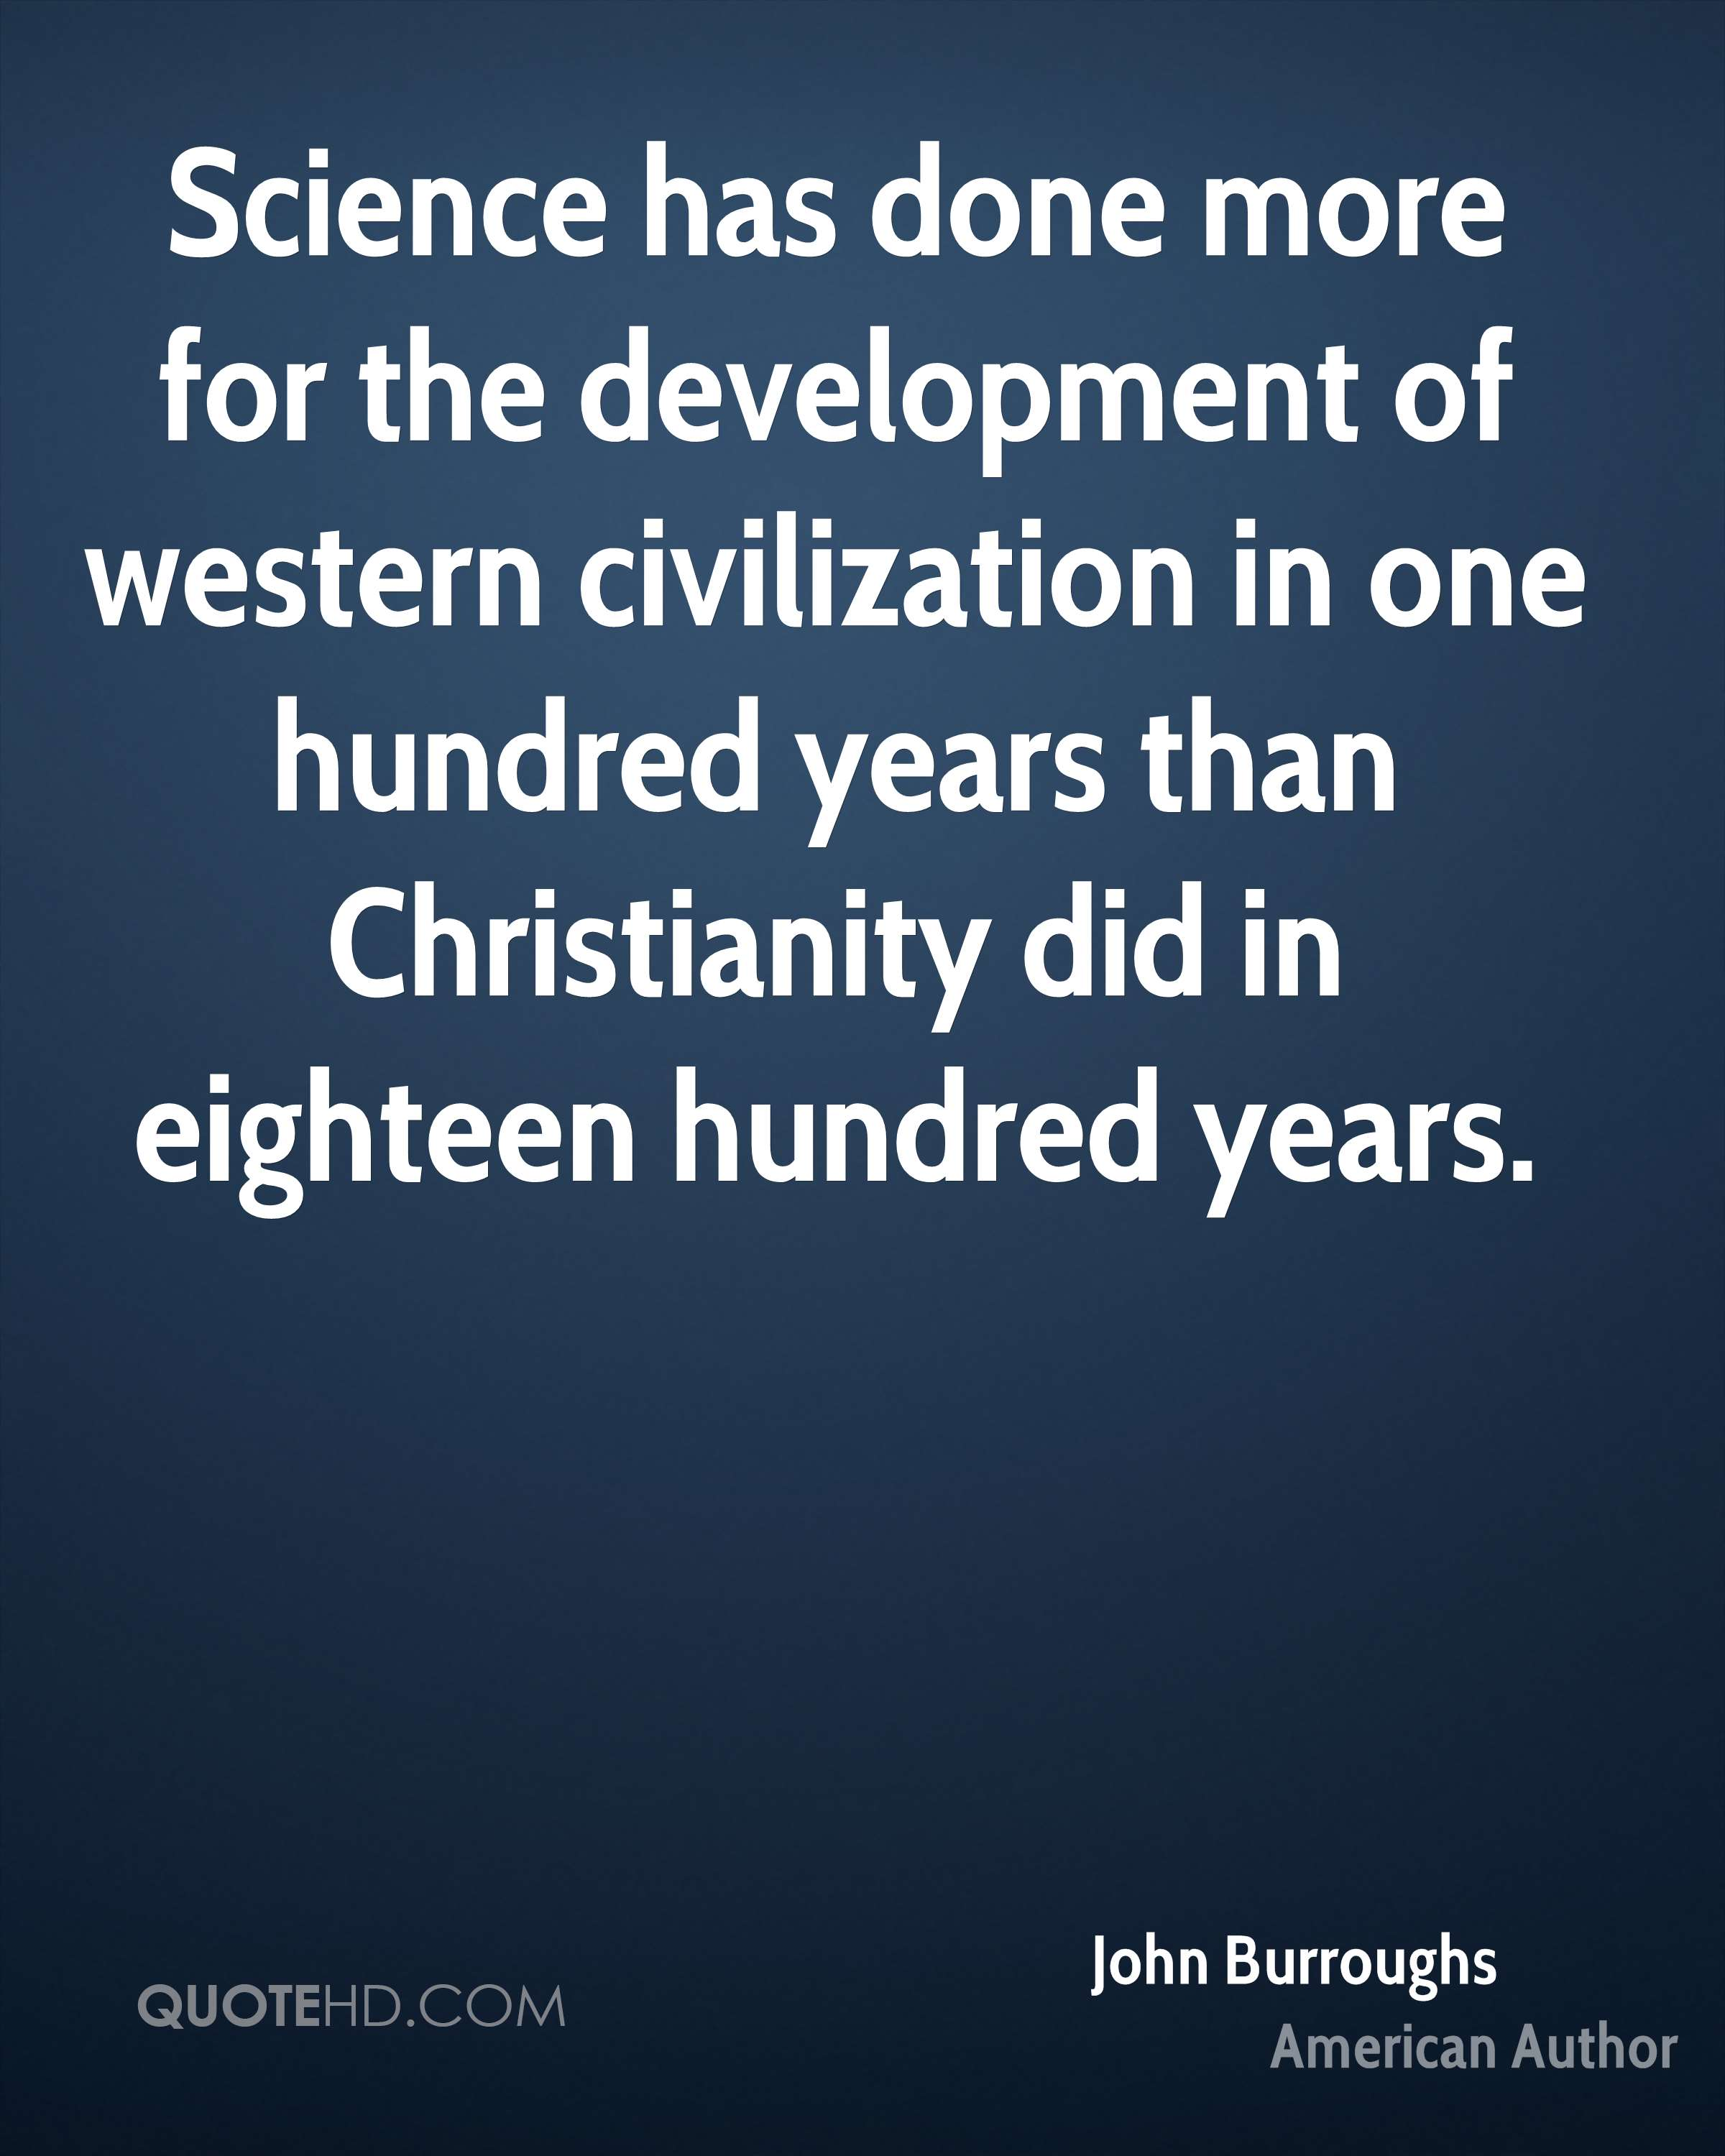 Science has done more for the development of western civilization in one hundred years than Christianity did in eighteen hundred years.